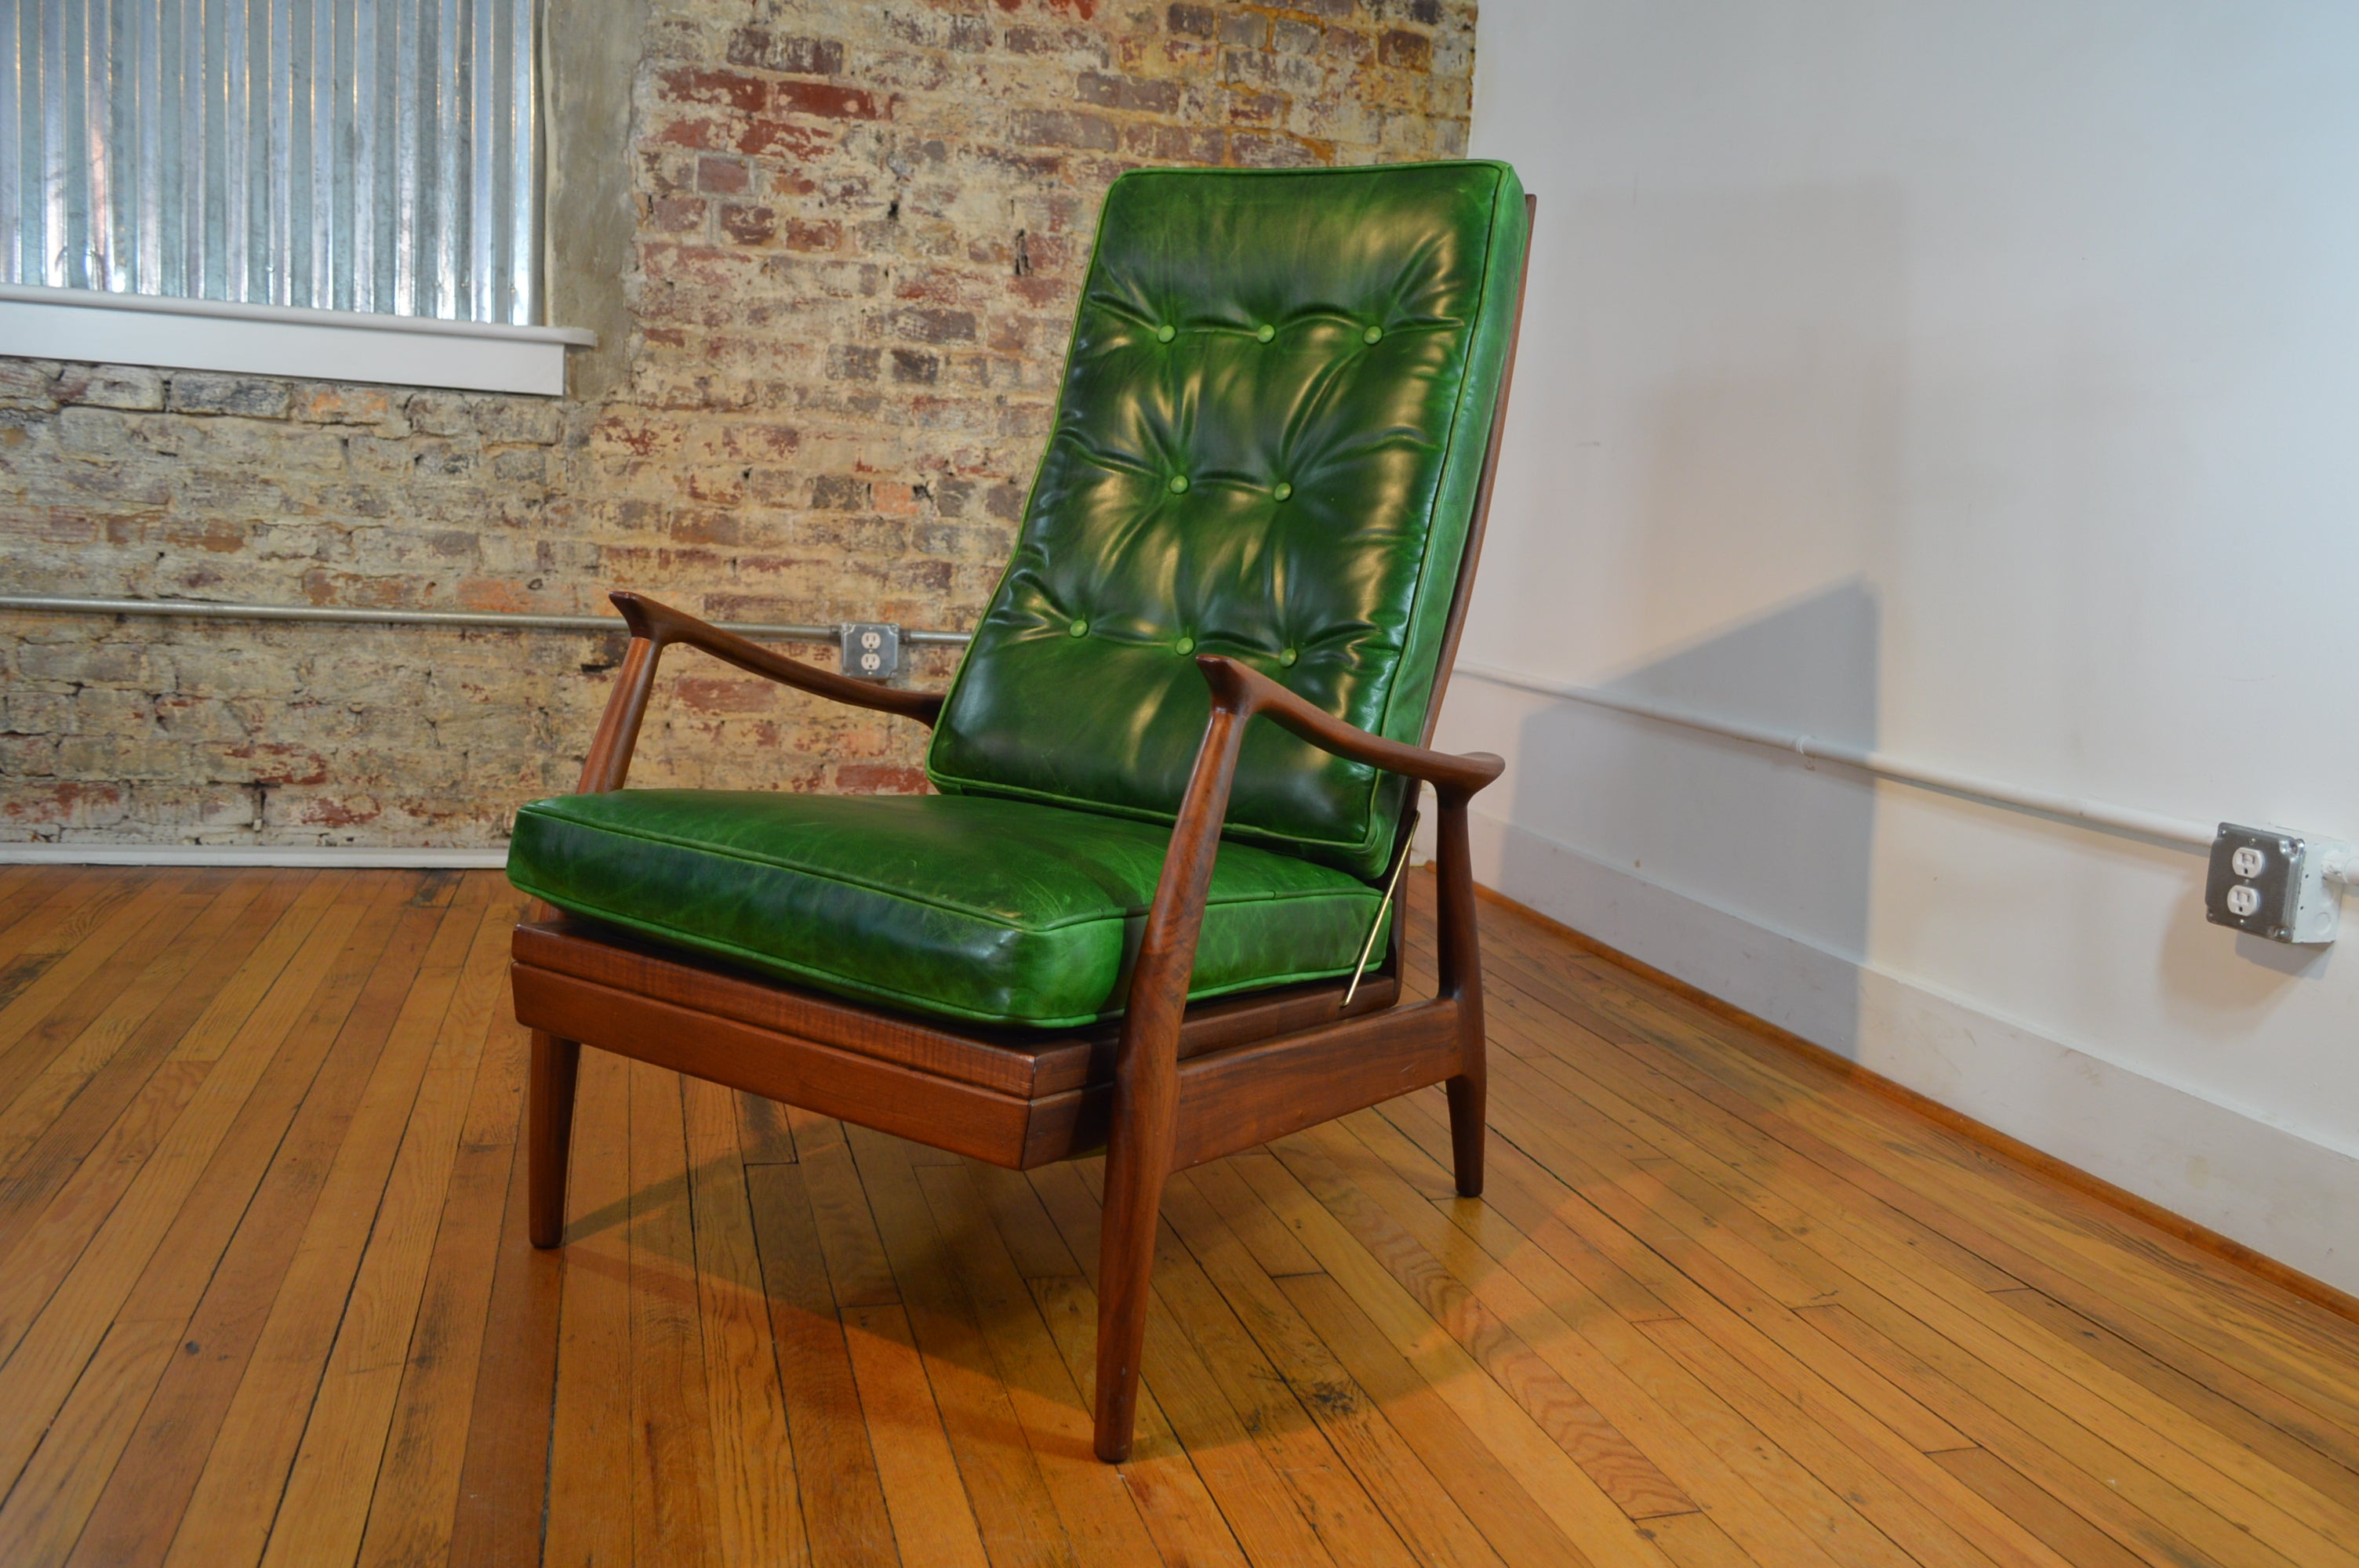 Milo Baughman for Thayer Coggin Walnut and Leather Recliner & Milo Baughman for Thayer Coggin Walnut and Leather Recliner ... islam-shia.org